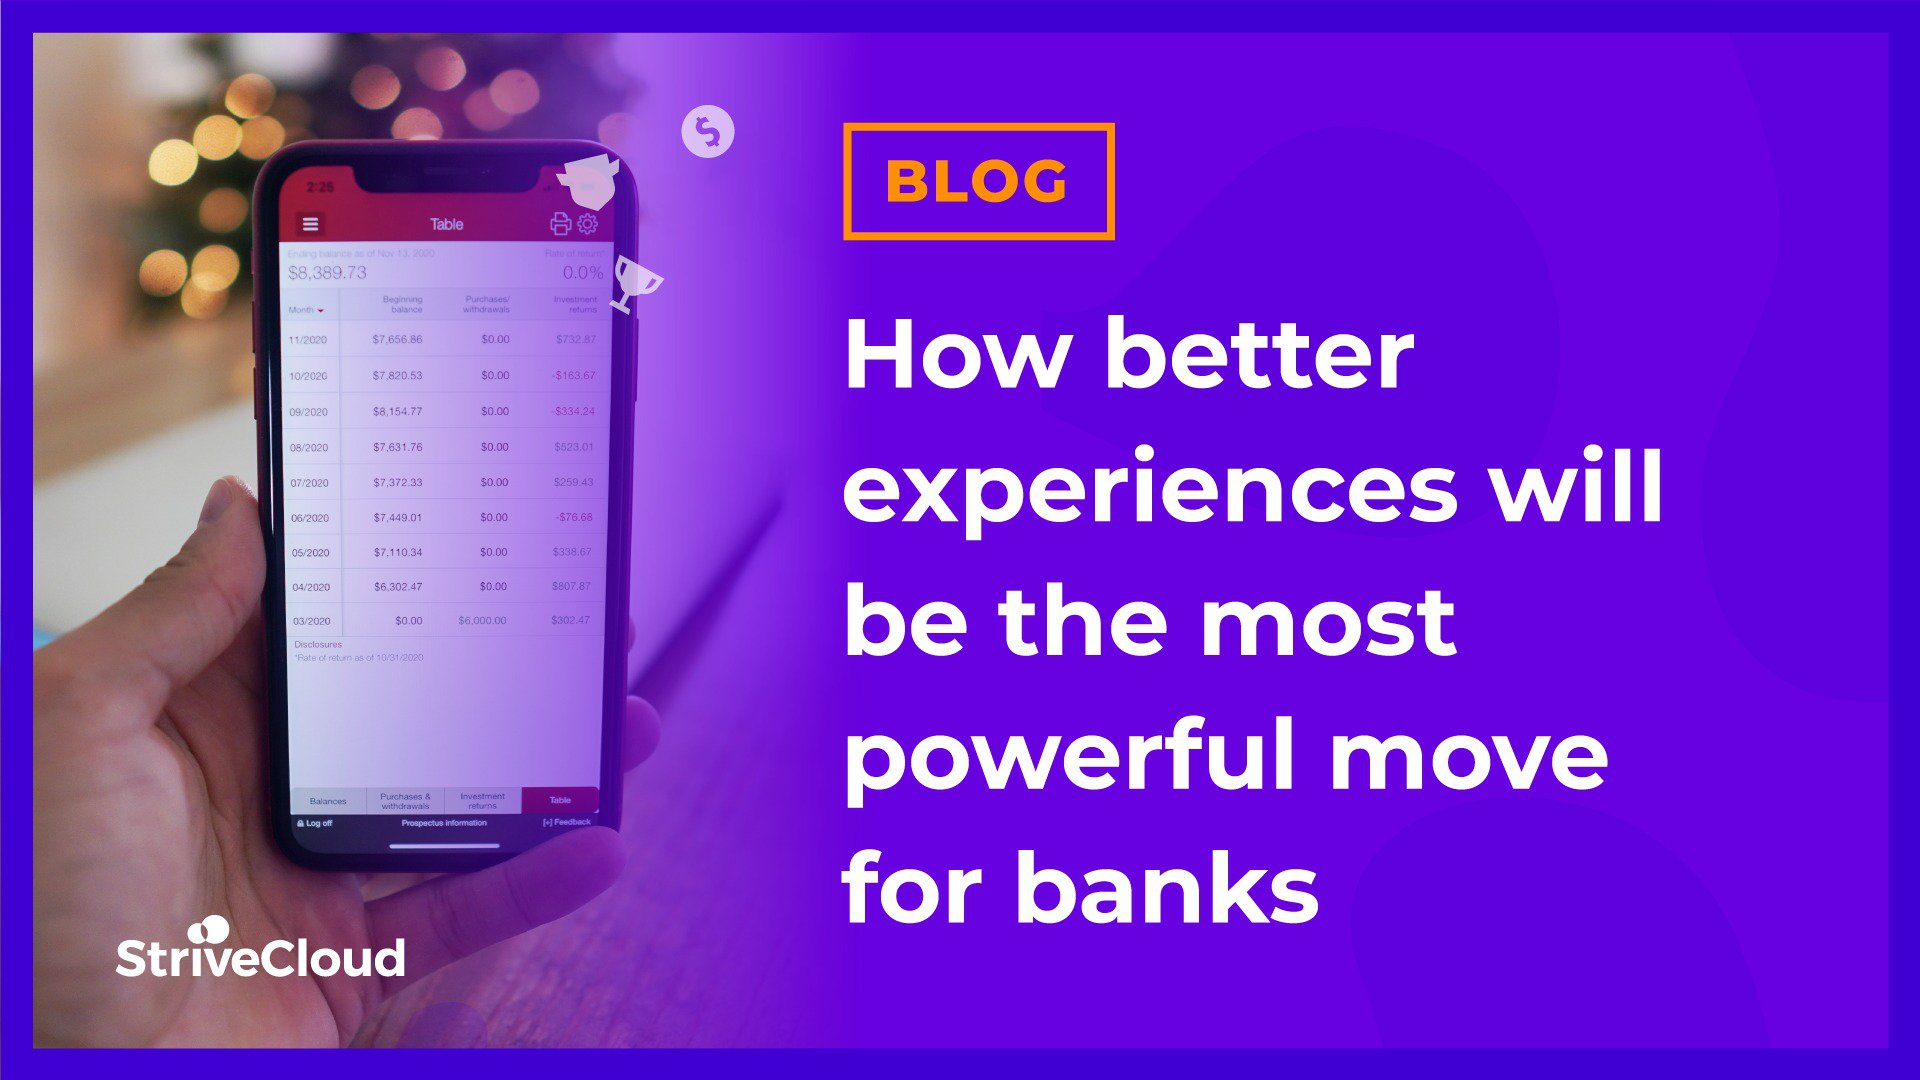 How better experiences will be the most powerful move for banks